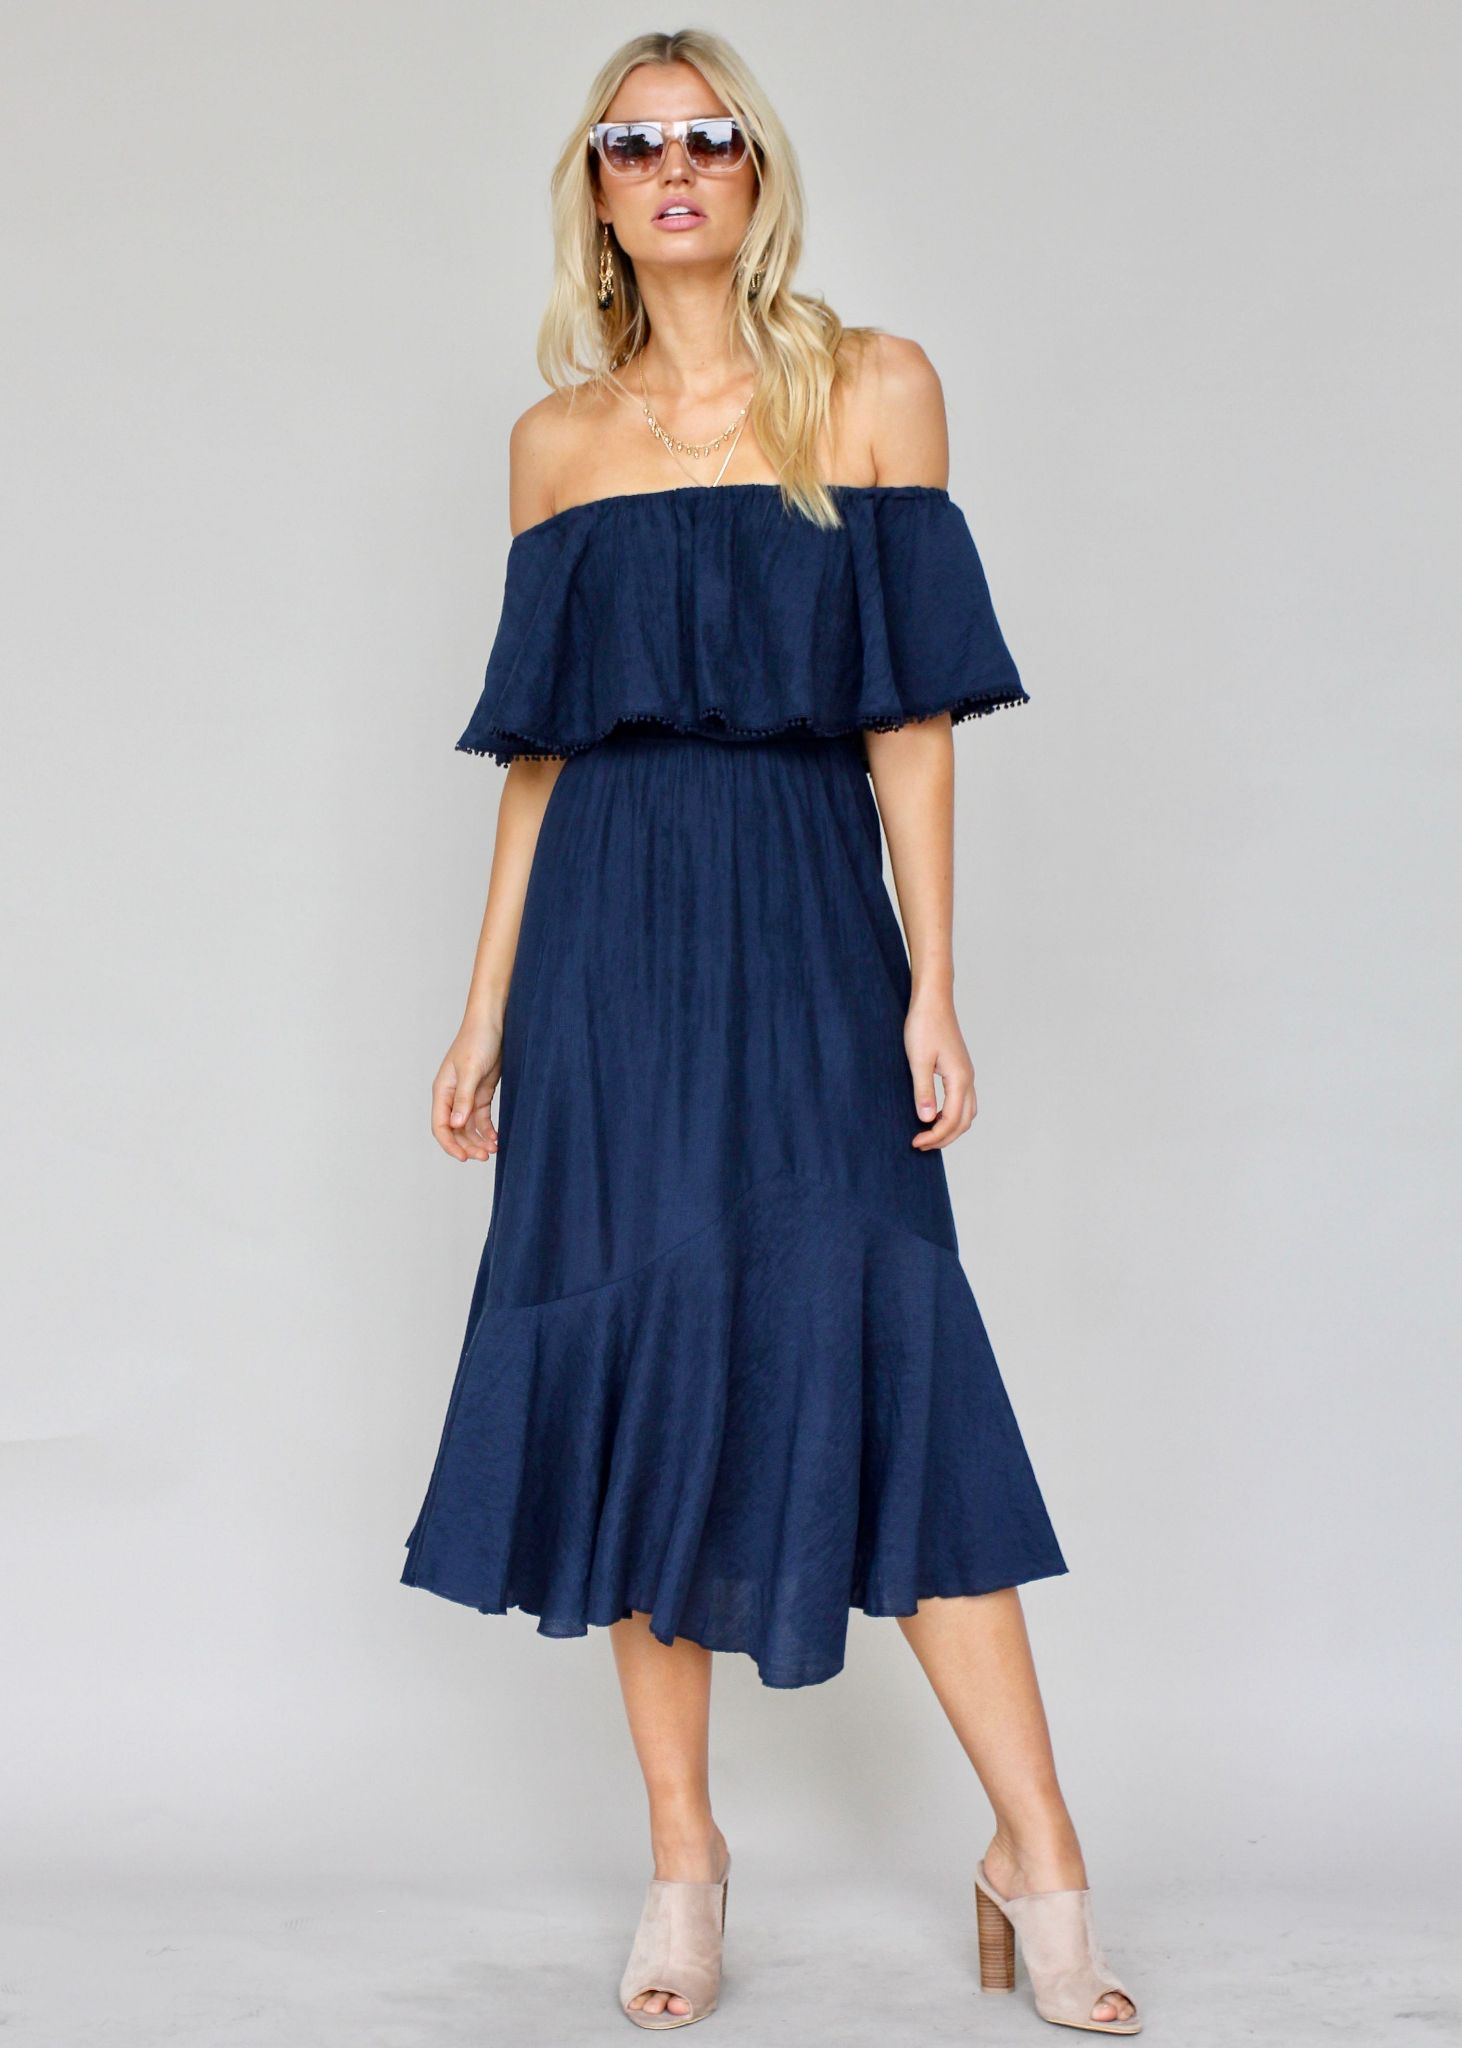 Hampton Summer Midi Dress - Navy